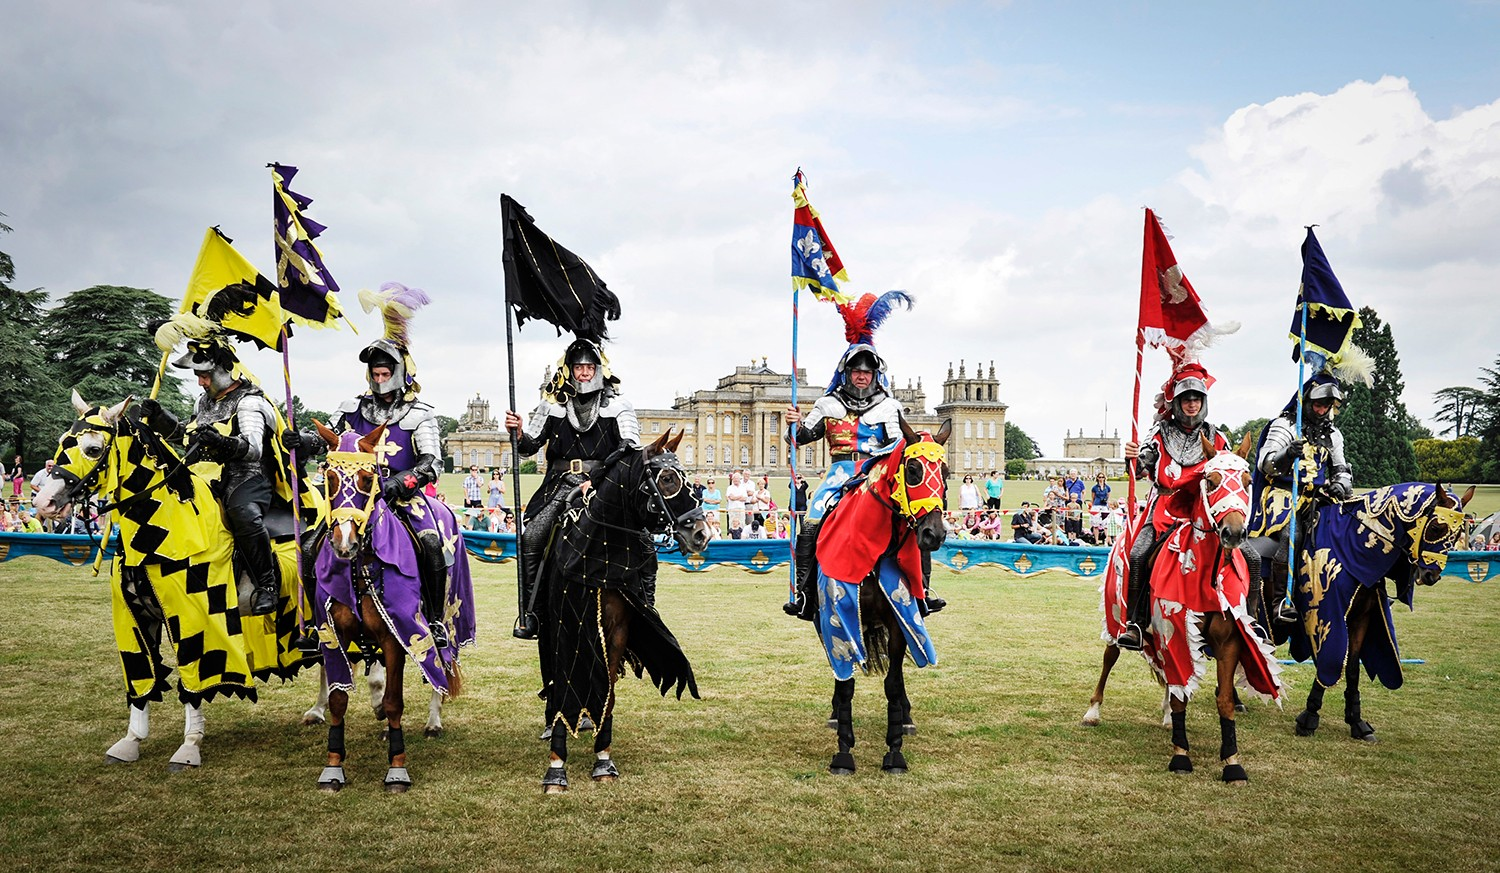 Summer-Jousting-at-Blenheim-Palace-Knights-Line-Up-2017-8b7aabf